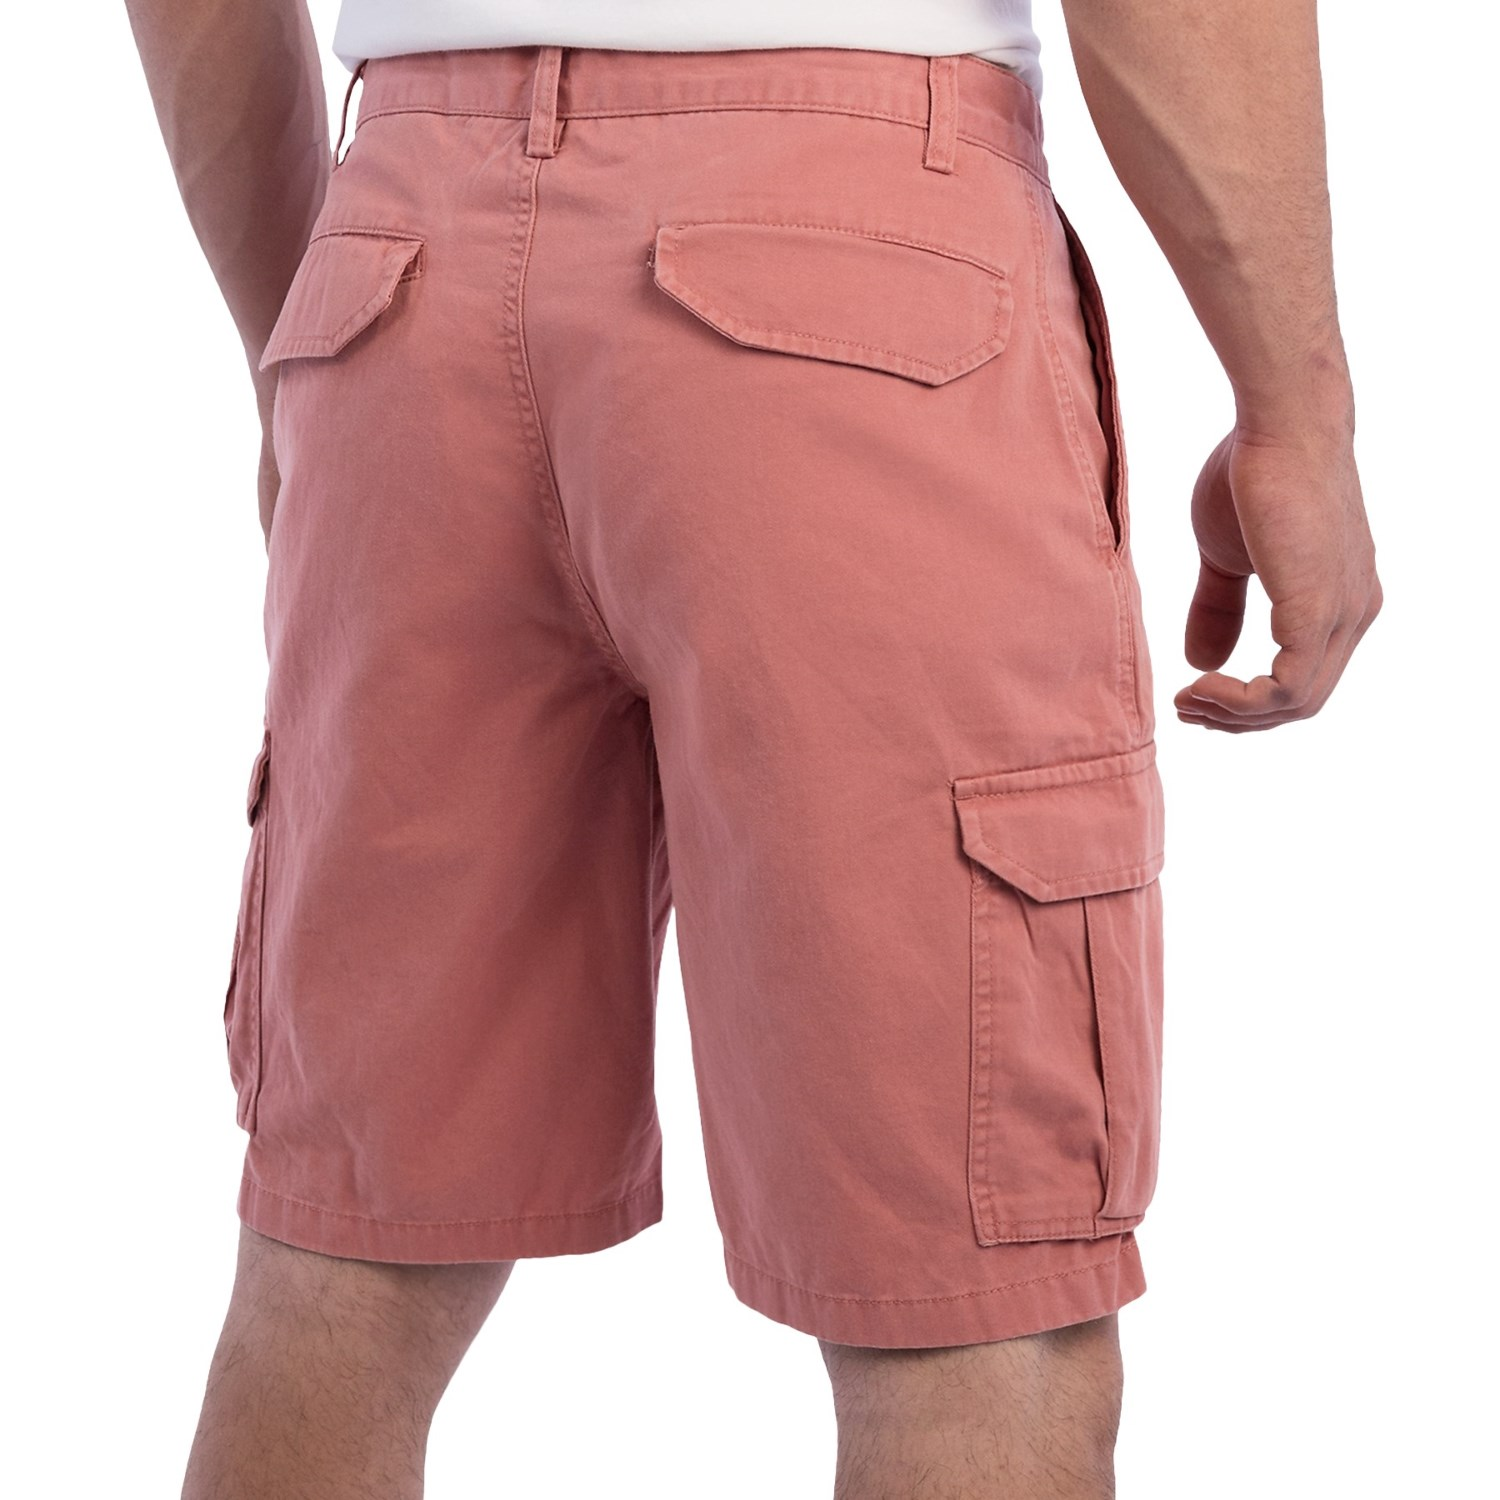 Revolution Men's Cotton Cargo Shorts with Belt Breathable cotton cargo shorts with multiple pockets and a tonal D-ring belt can be a comfortable choice for warm days Groupon/5(33).